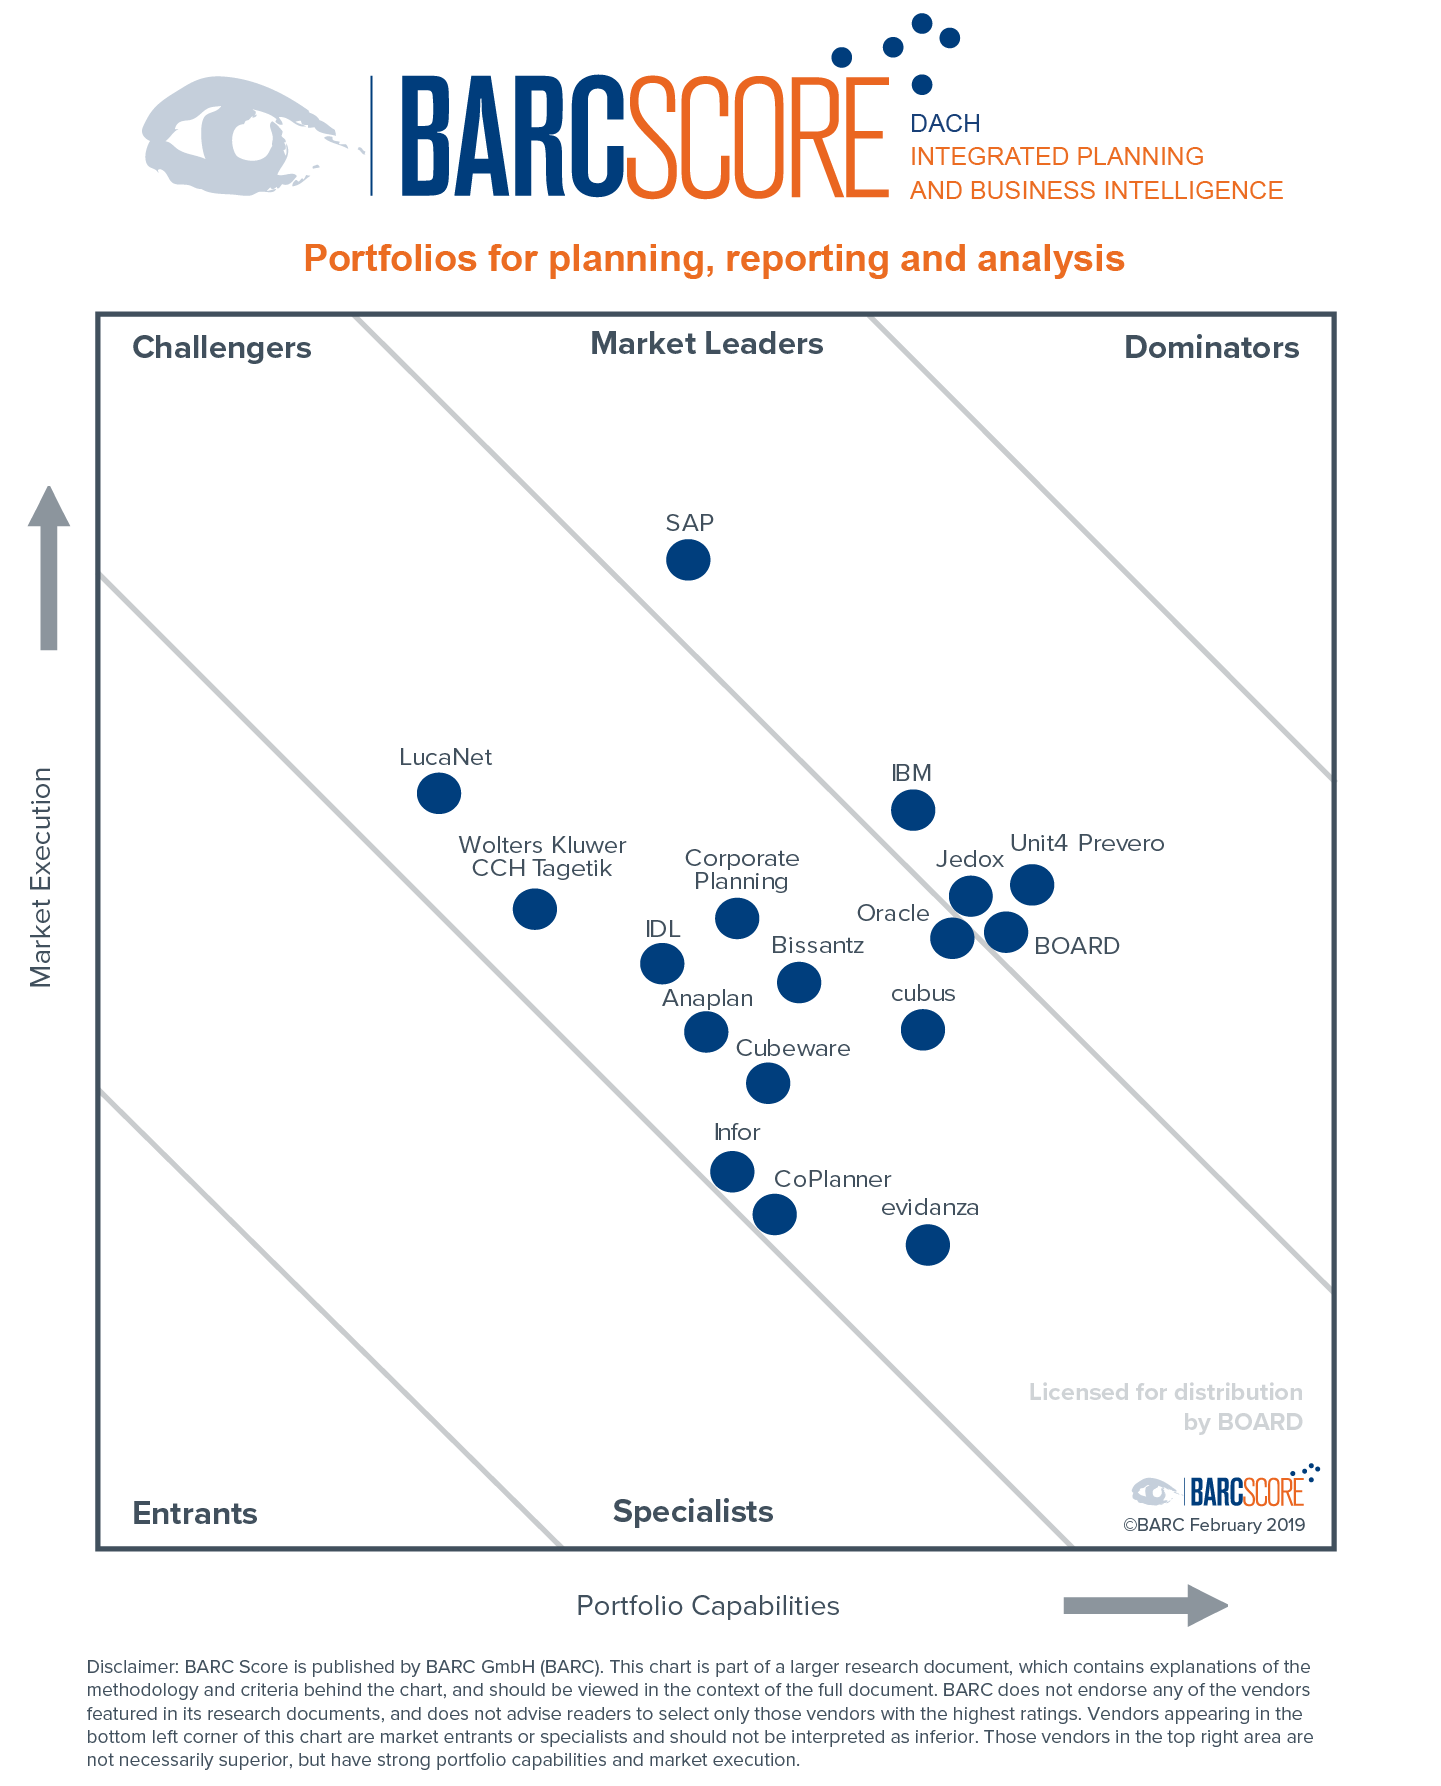 BARC Score - Integrated Planning and Business Intelligence DACH